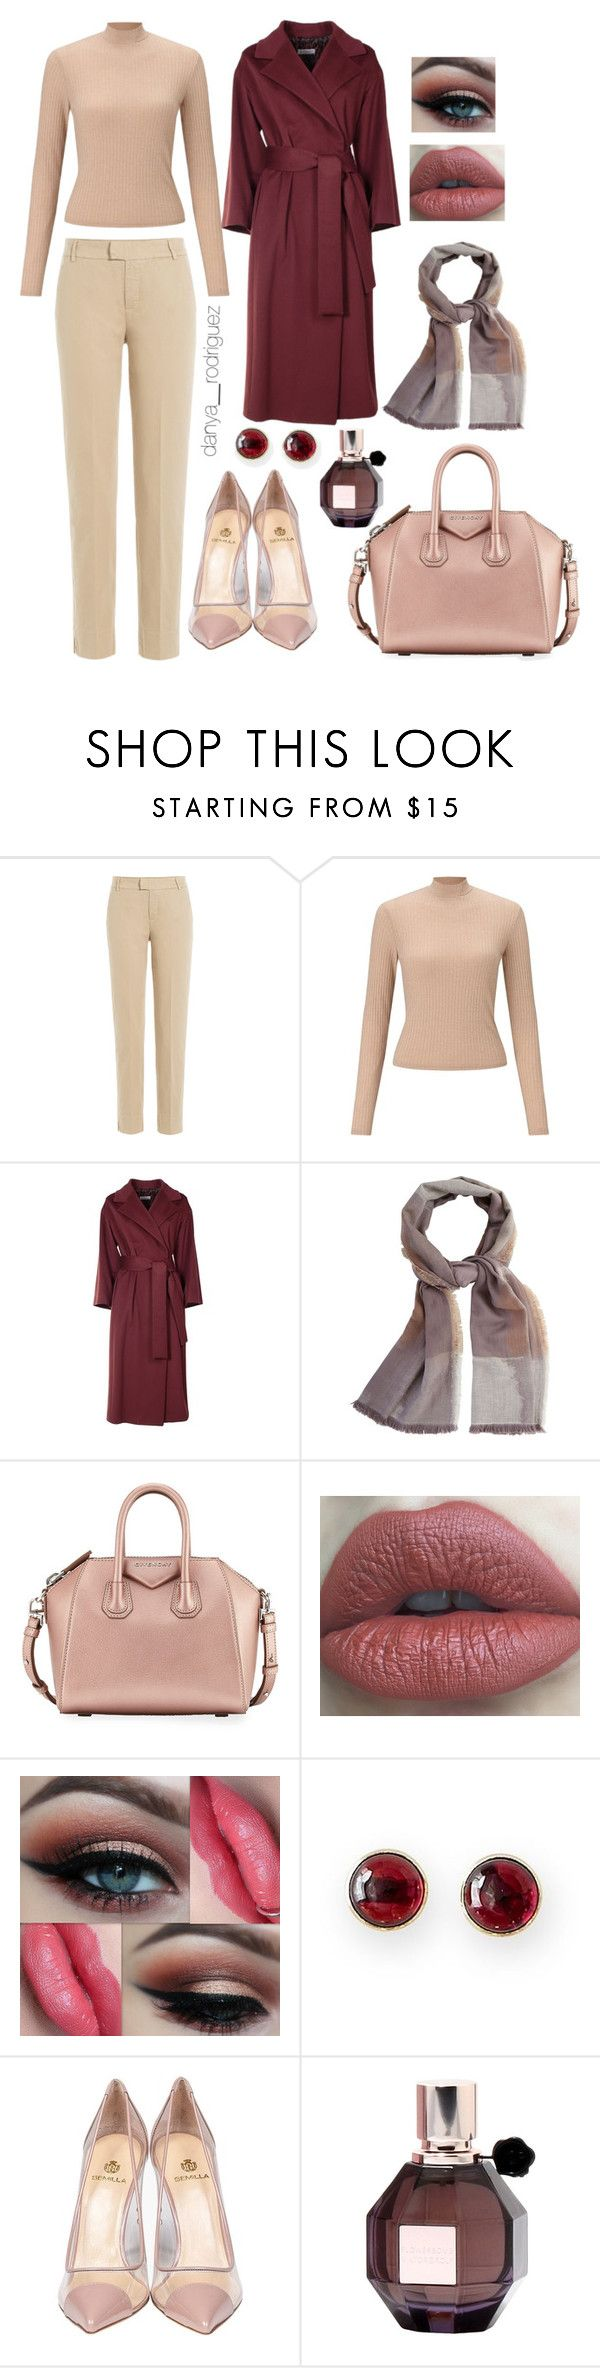 """""""Sin título #111"""" by sousou2578 on Polyvore featuring moda, 7 For All Mankind, Miss Selfridge, Alberto Biani, BCBGMAXAZRIA, Givenchy, Mark & Graham, Semilla y Viktor & Rolf"""